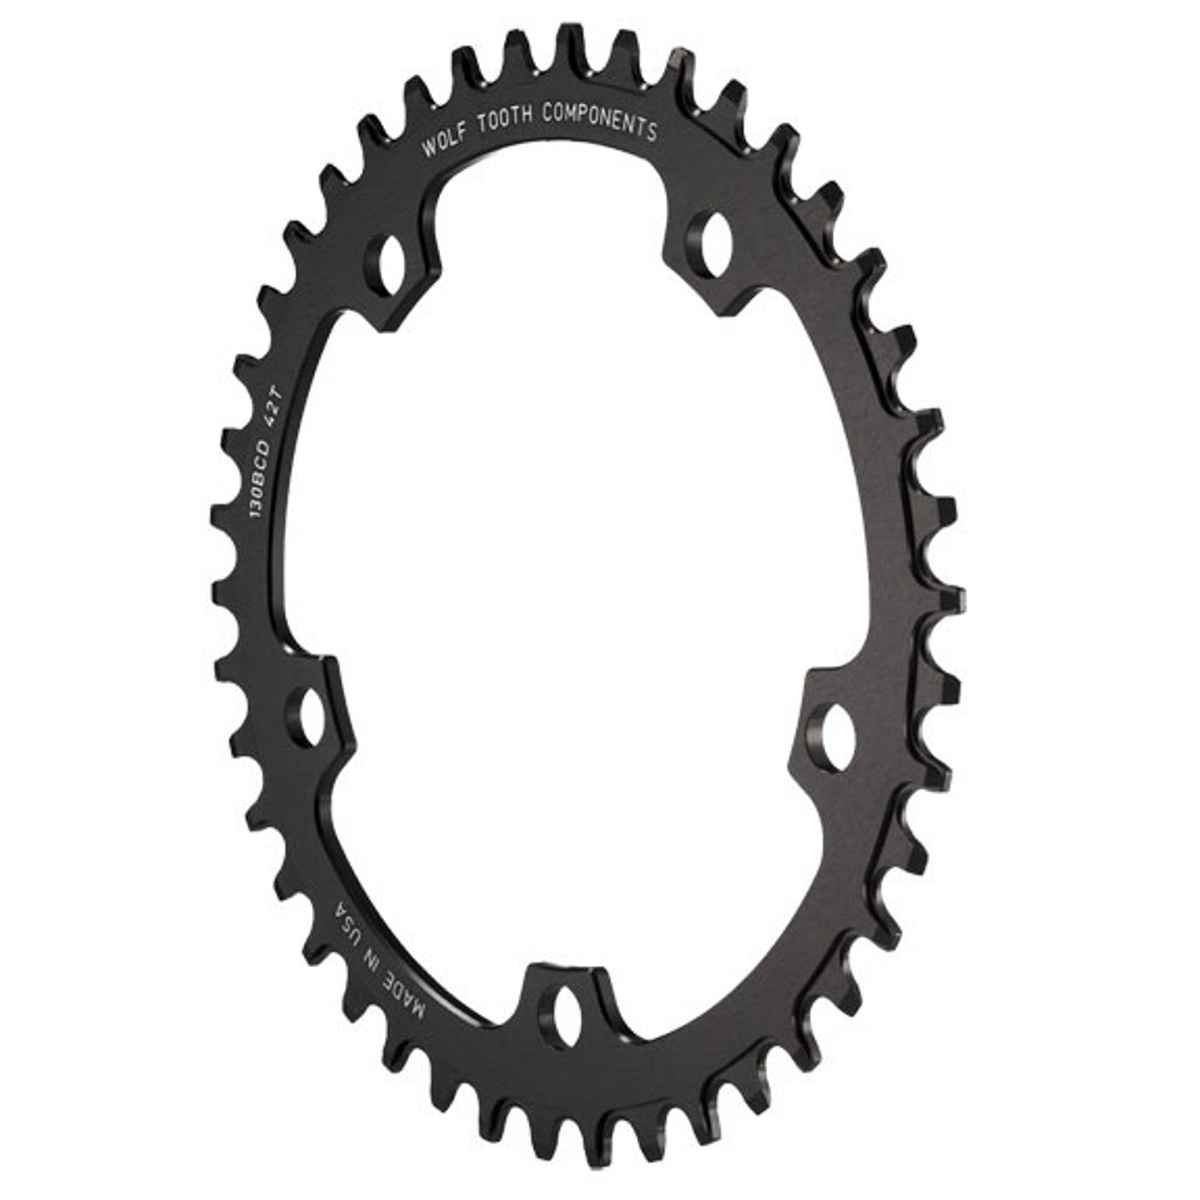 Wolf Tooth Road &シクロクロスドロップ停止Chainring B00MYJ3O2G 44t|110BCD 5-ボルト 44t